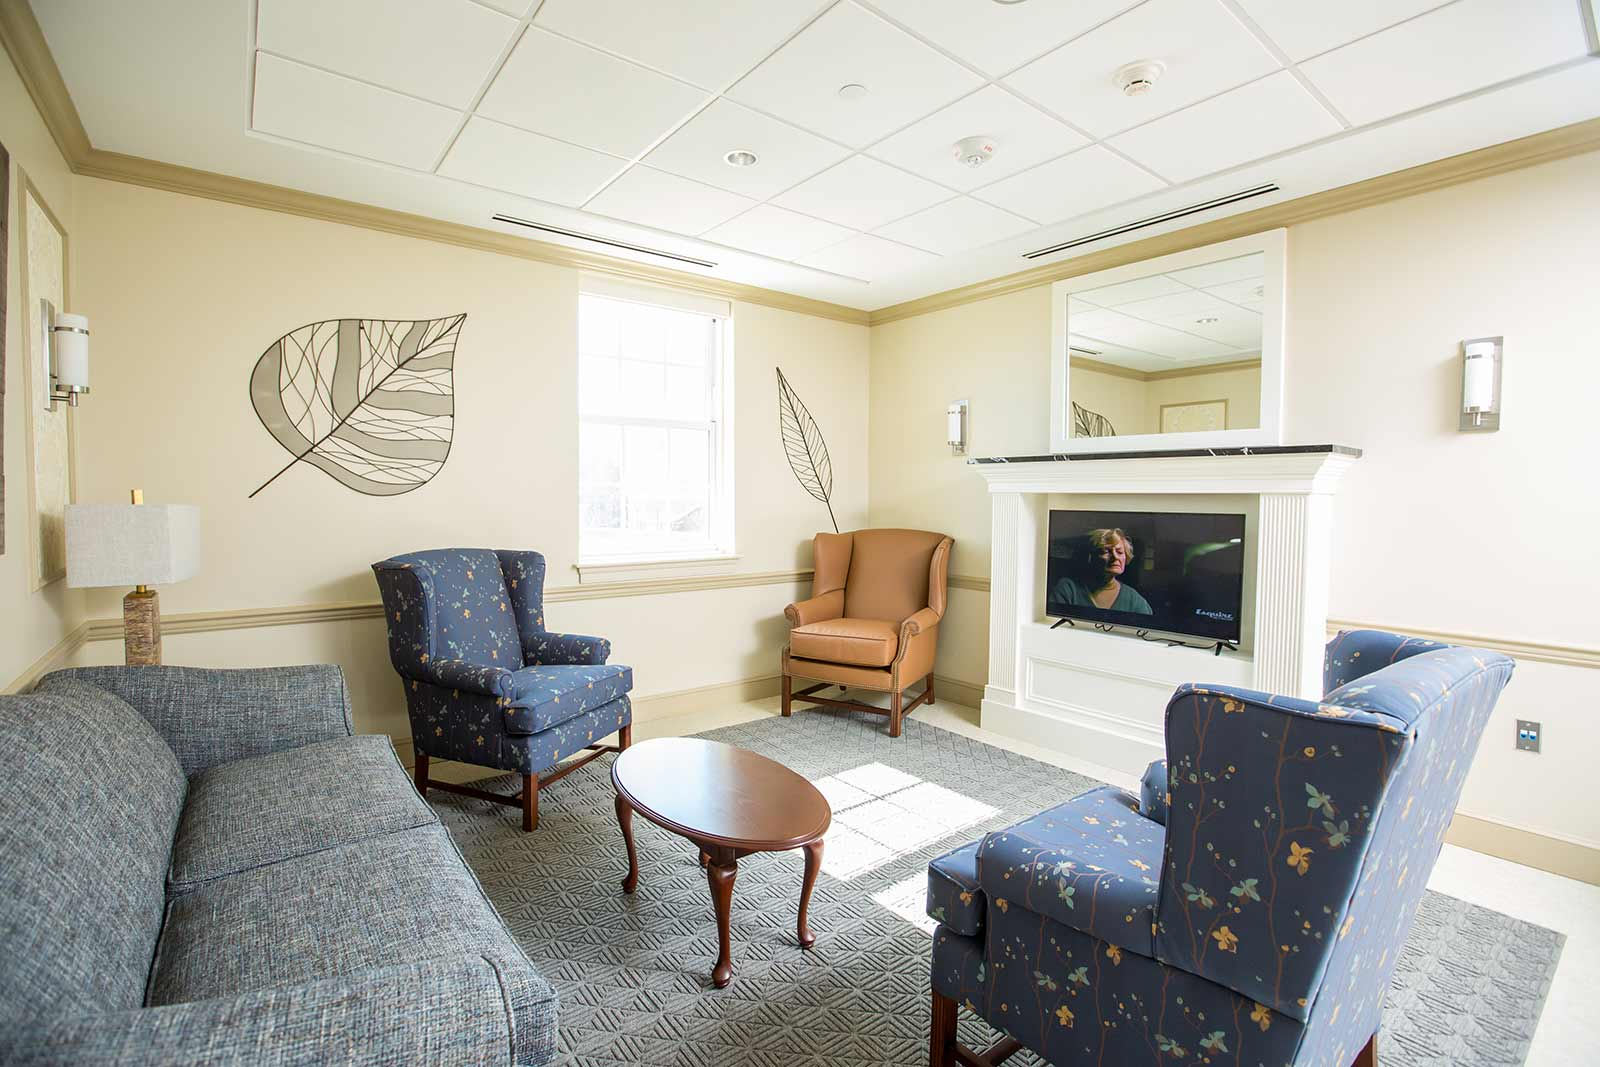 Common areas in residence halls give students the perfect spot for in-depth conversations—or to binge watch an epic season of your favorite show on Netflix.